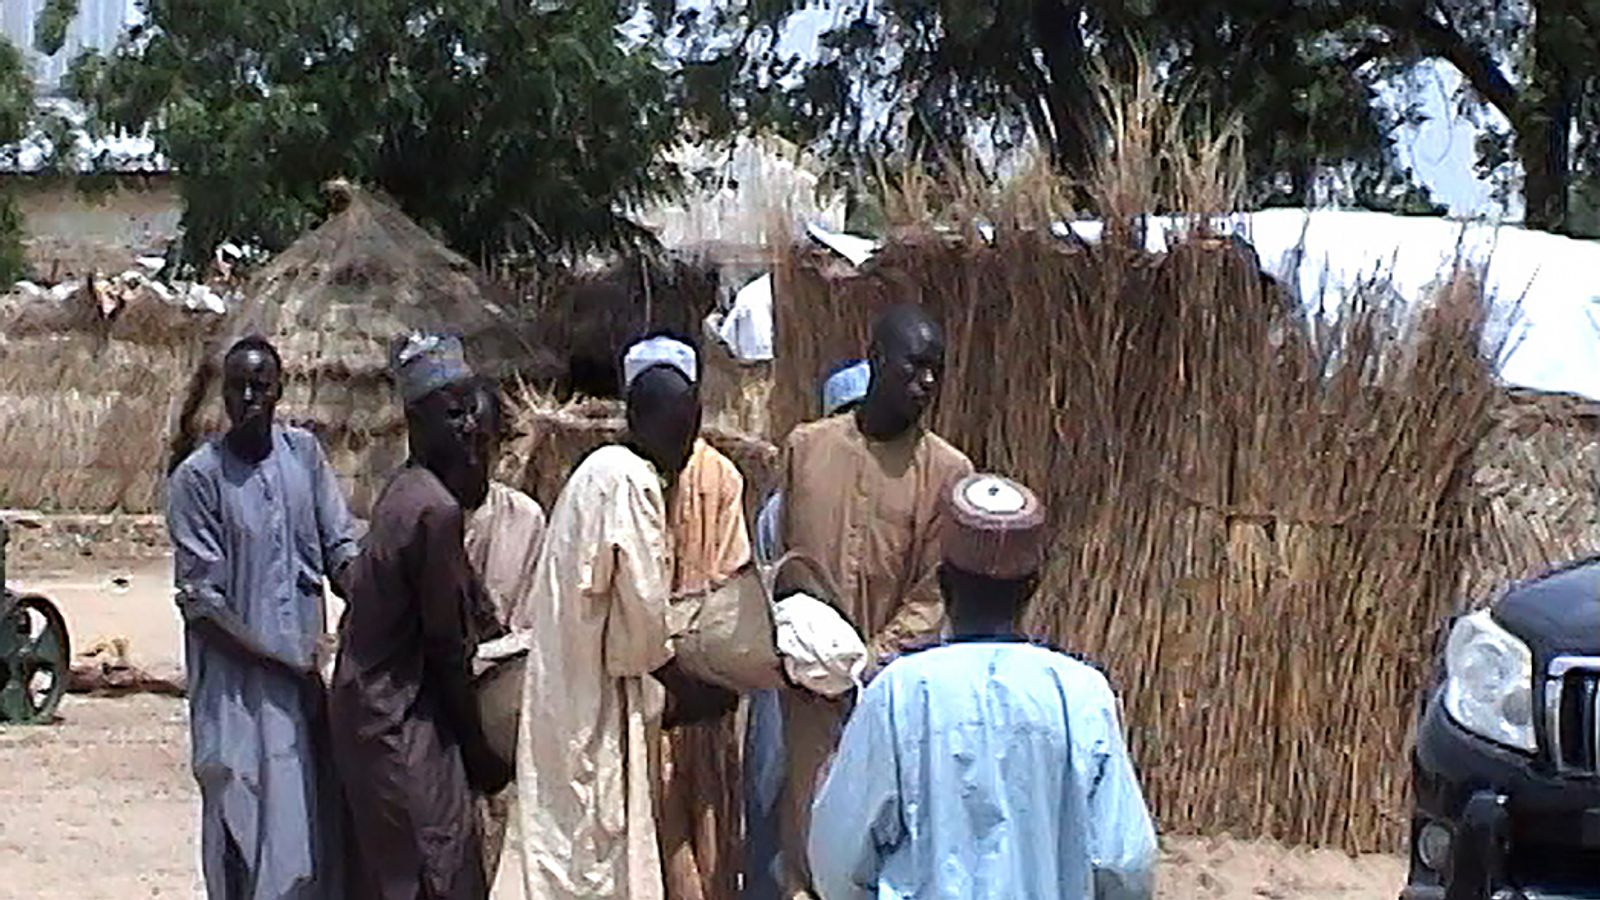 More than 60 dead as Boko Haram extremists target funeral